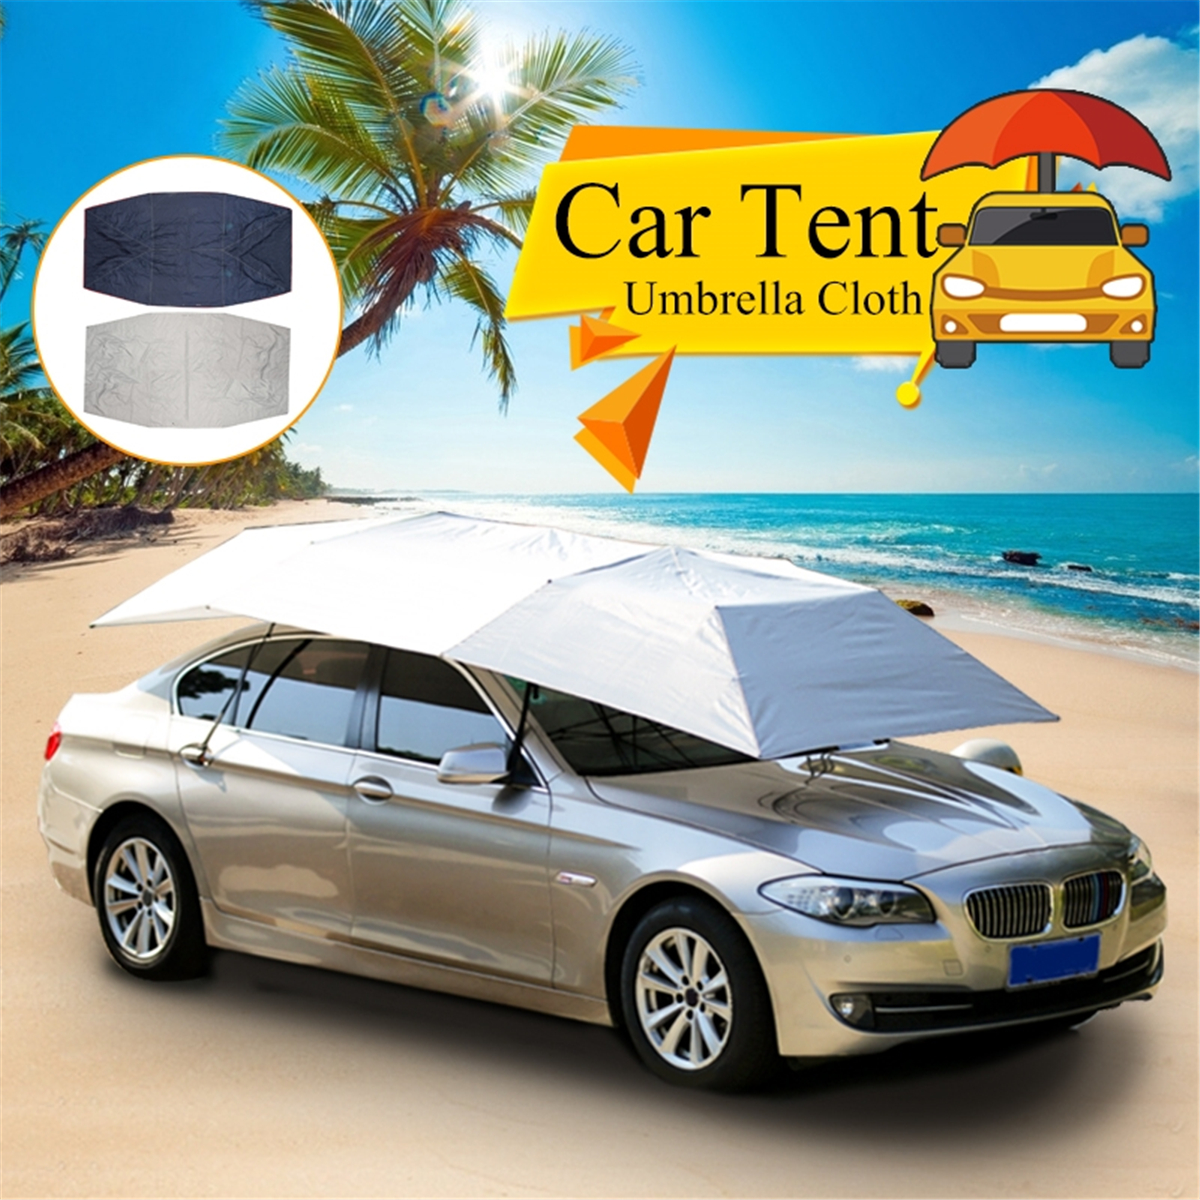 Foldable Outdoor Car Tent Umbrella Sunshade Roof Cover Cloth Full Automatic Anti UV Waterproof Windproof Replaceable Car CoverFoldable Outdoor Car Tent Umbrella Sunshade Roof Cover Cloth Full Automatic Anti UV Waterproof Windproof Replaceable Car Cover